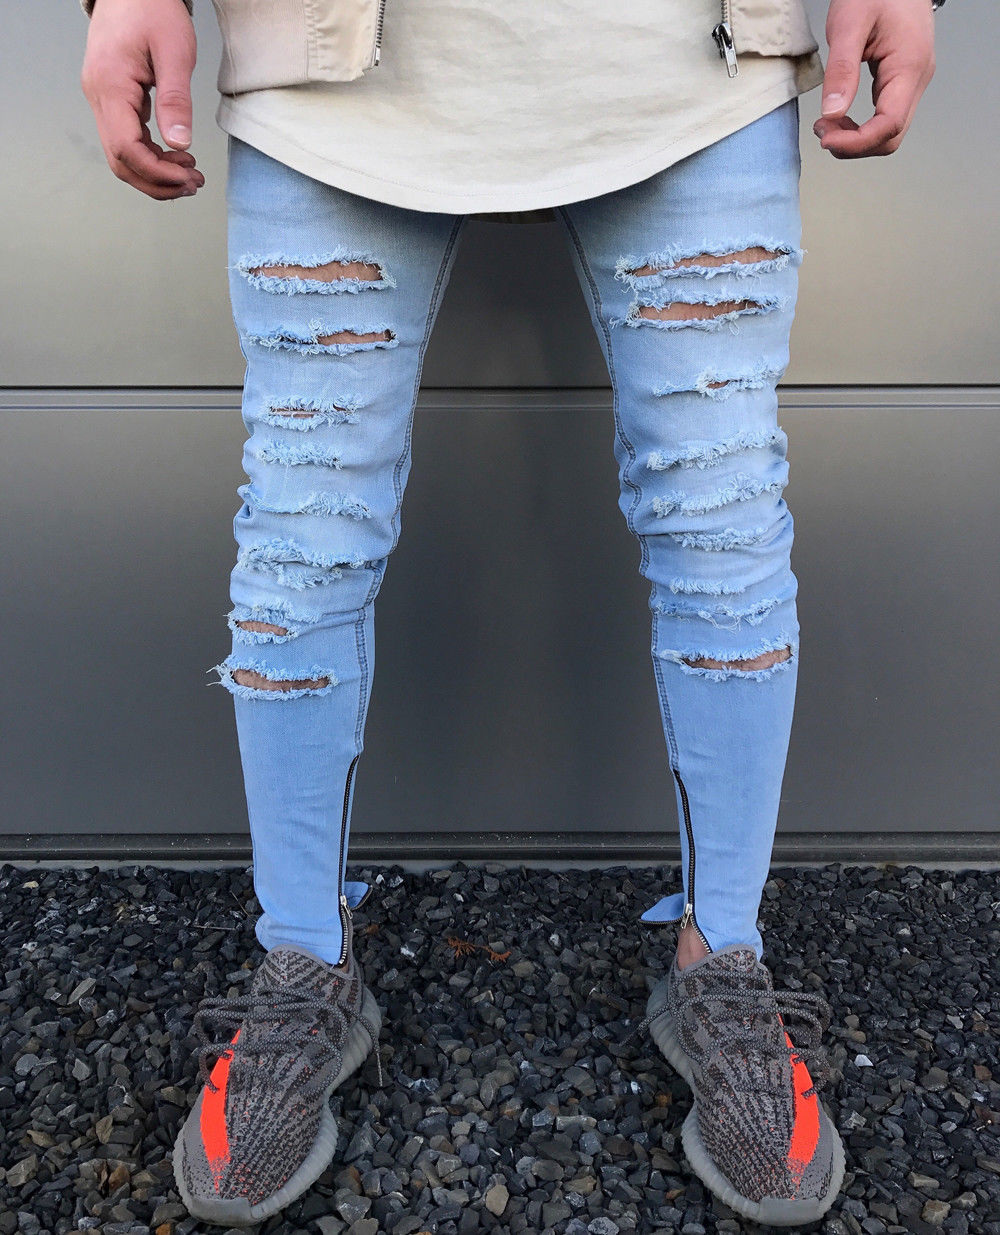 Fashion Men Ripped Skinny Hole Jeans Destroyed Frayed Slim Fit Denim Pants Stylish Mens Fake Zipper Pencil Denim Jeans compatible projector lamp for sanyo plc zm5000l plc wm5500l